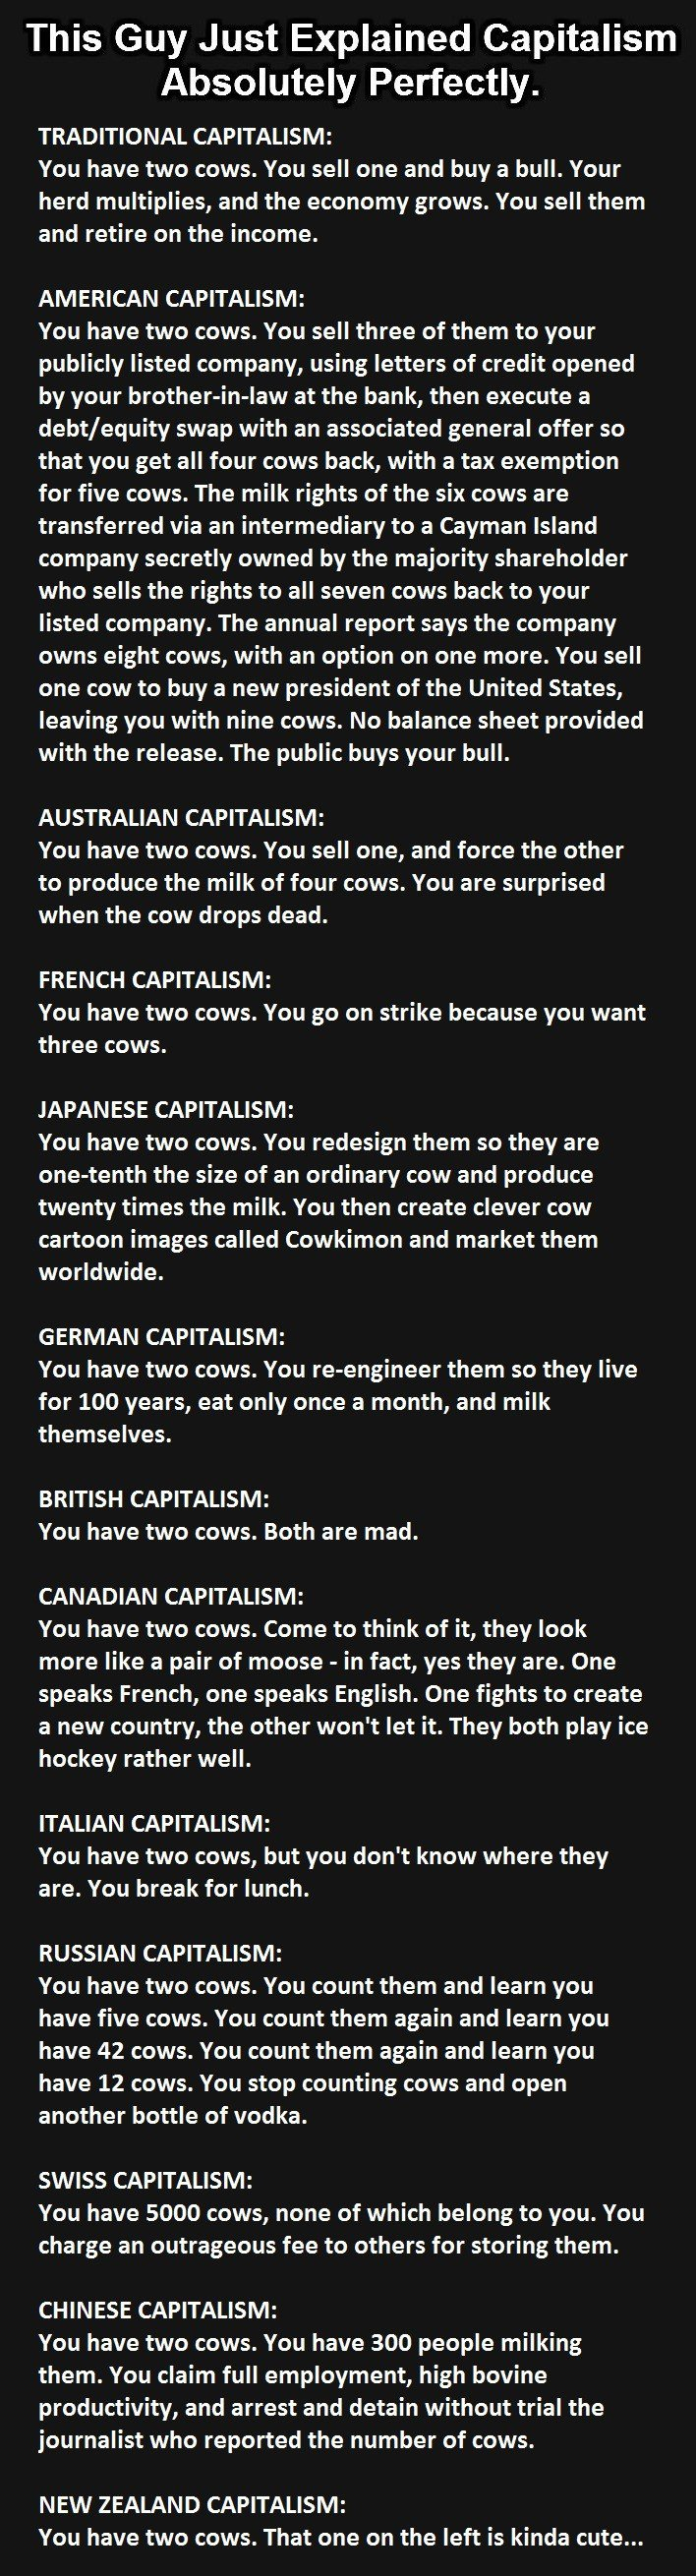 funny, capitalism, two cows capitalism, understanding capitalism, learn capitalism funny way, lol